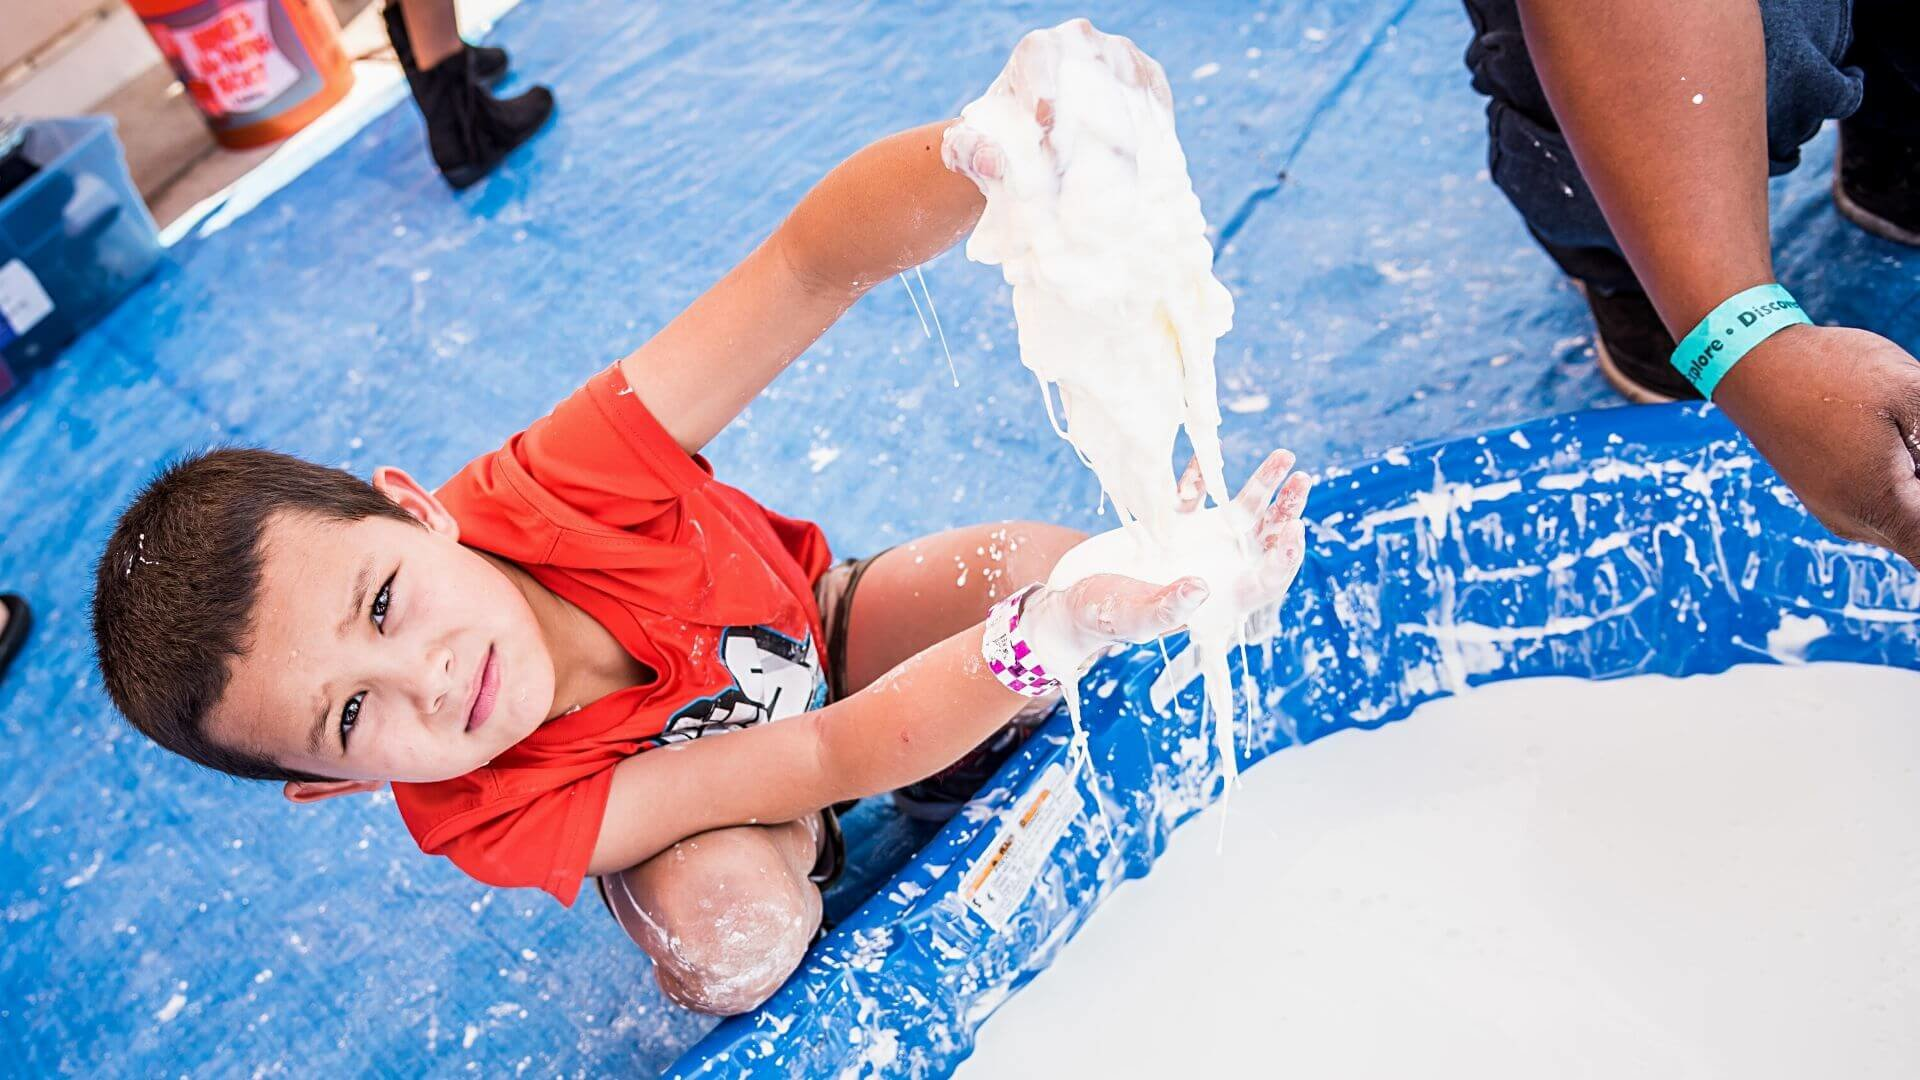 Child in red shirt doing STEM slime activity during Mess Fest at Orlando Science Center